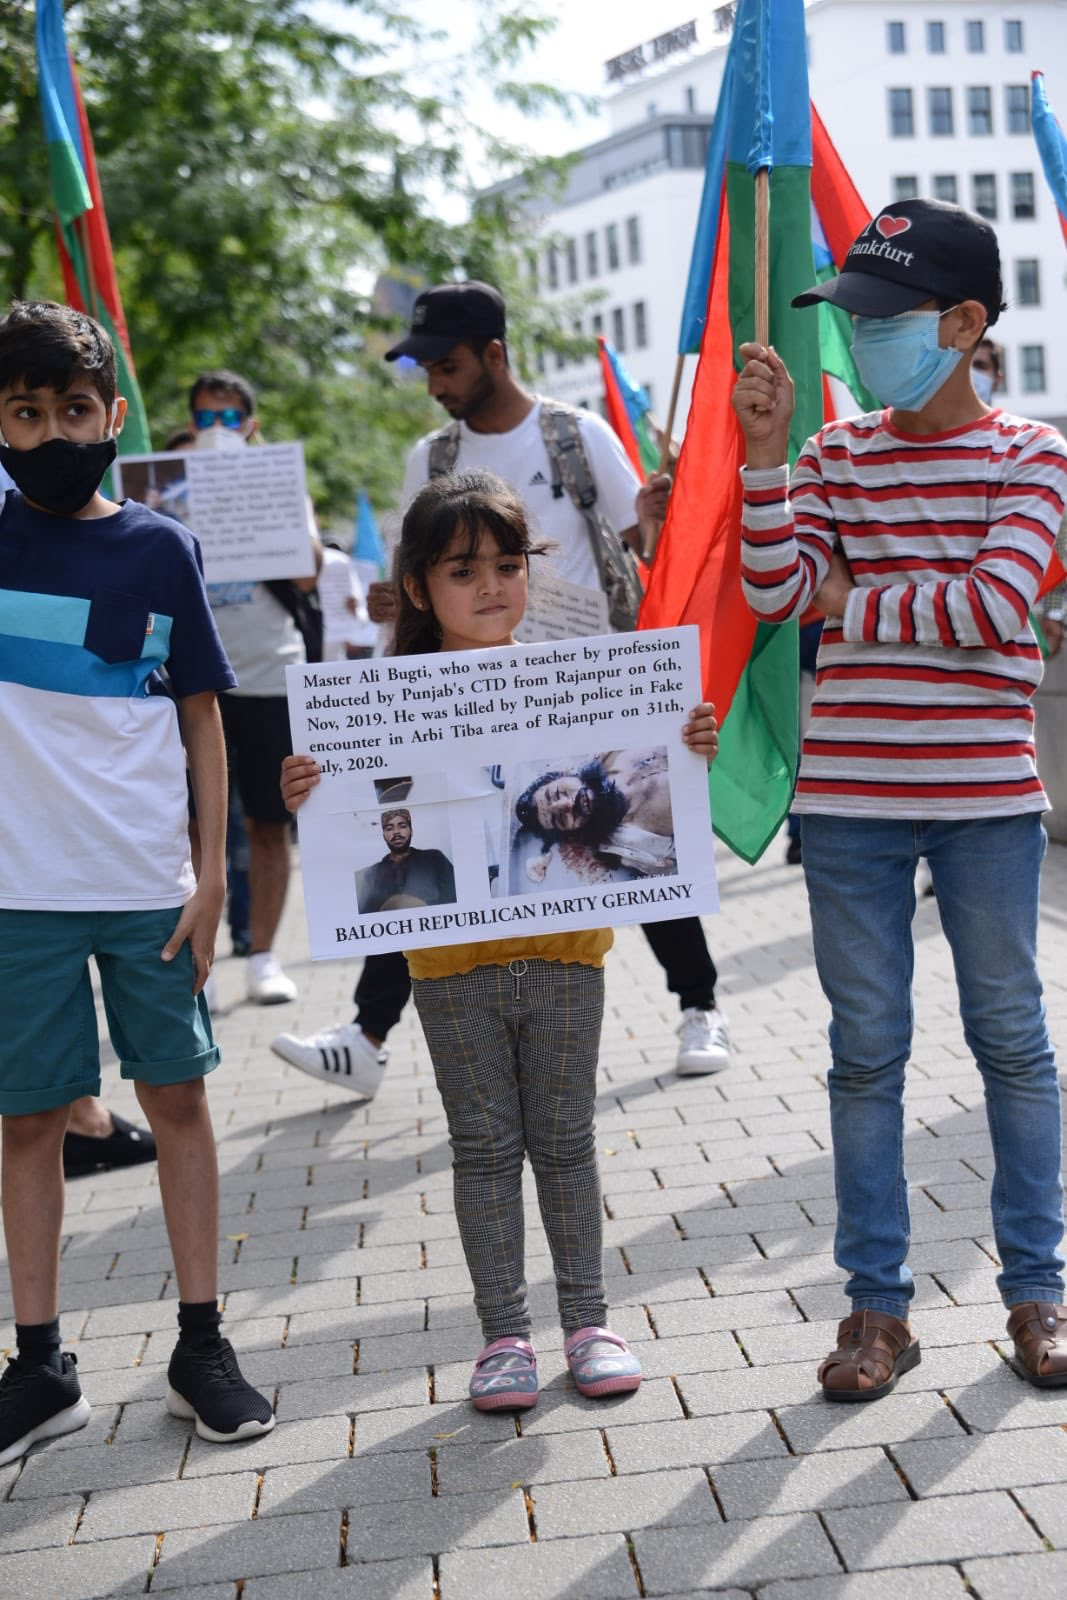 Freedom Fighters in Balochistan Kill 7 Pakistan Army Soldiers; Pakistan Army Retaliates By Killing 5 Bugti Tribesmen in Fake Encounters: Protests in Hanover, Germany